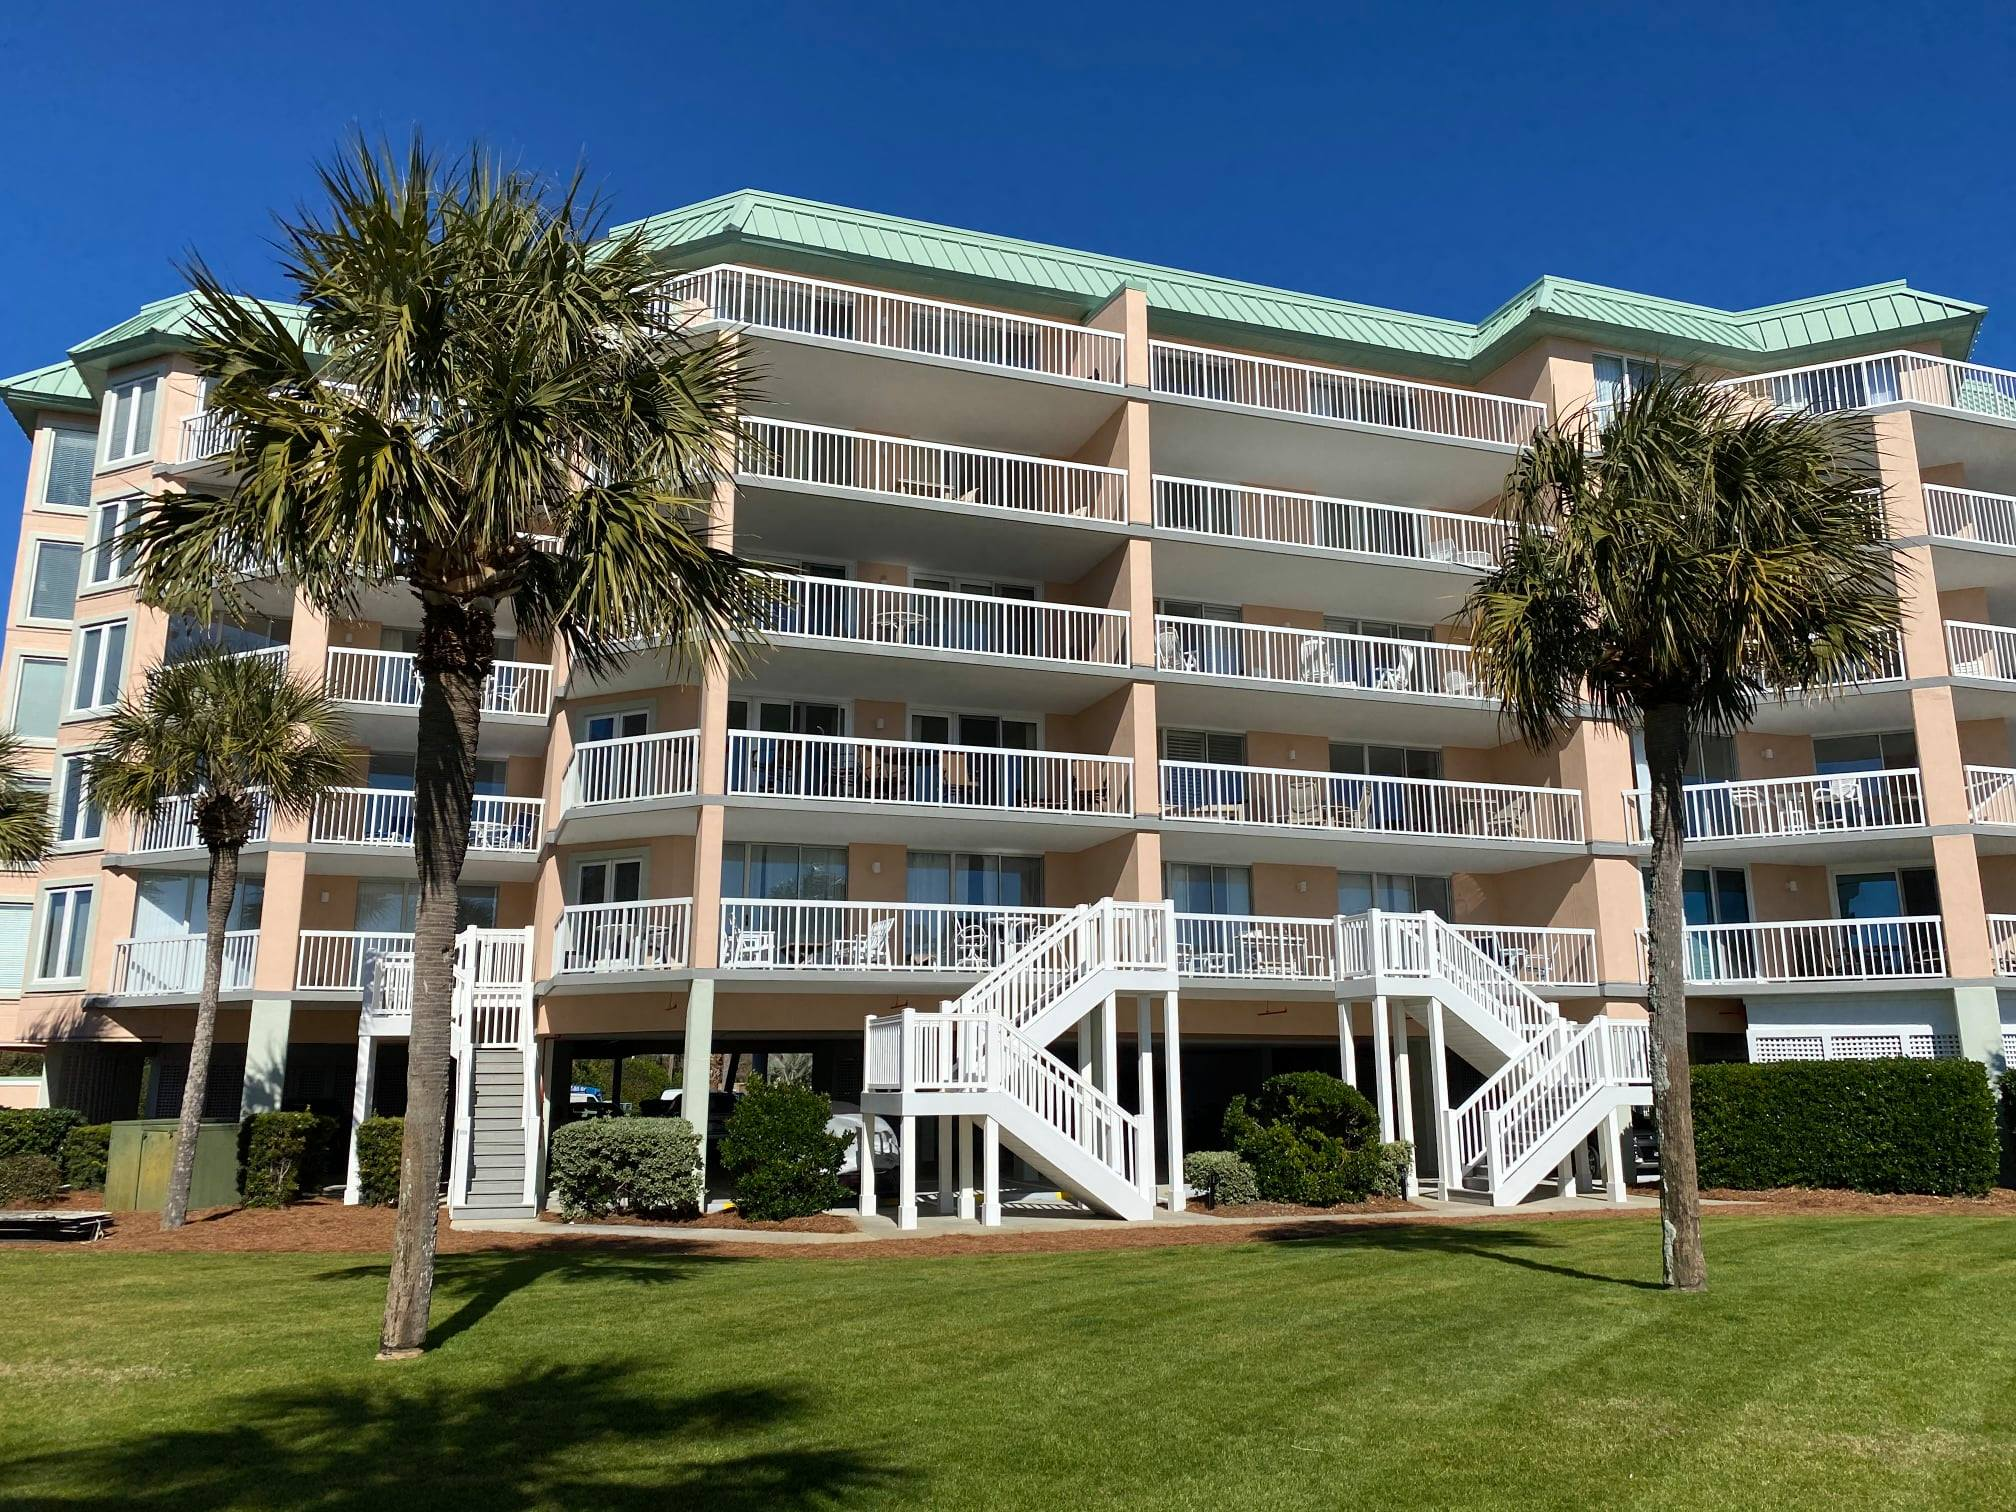 The Warwick At Somerset - Litchfield By The Sea - Pawleys Island, SC